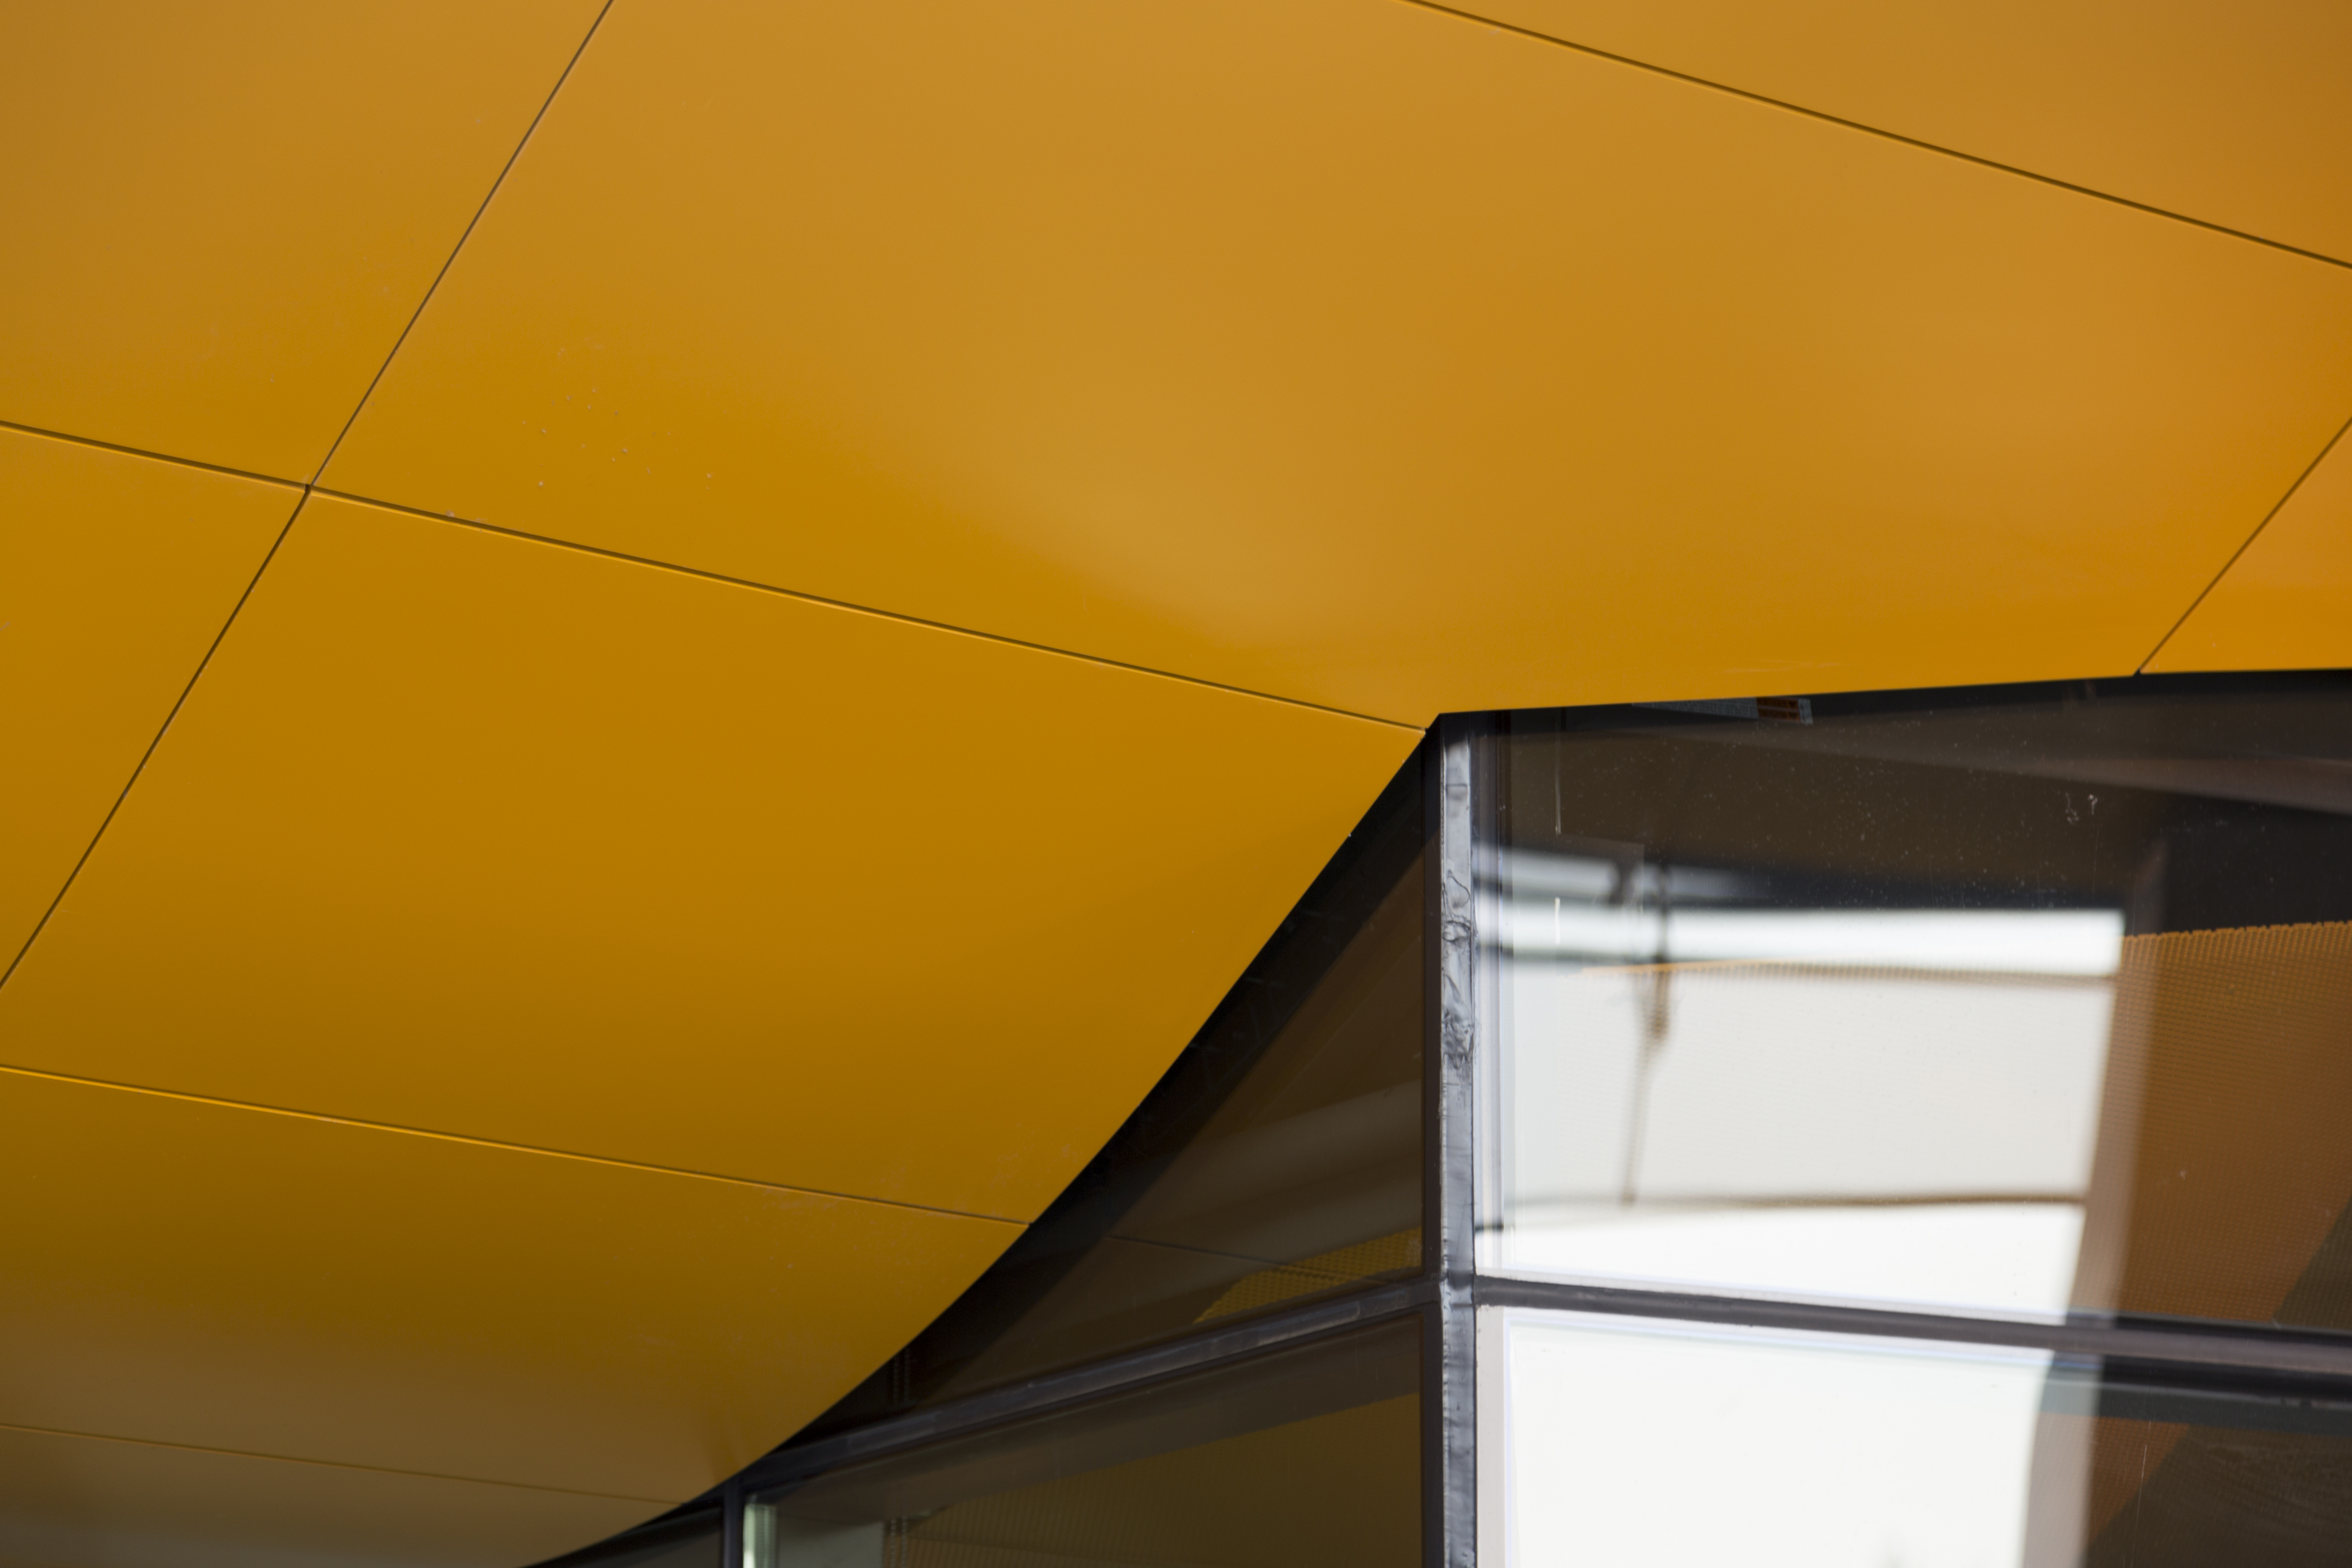 Detail of the orange-painted aluminum soffit system used on Gates Hall at Cornell University.